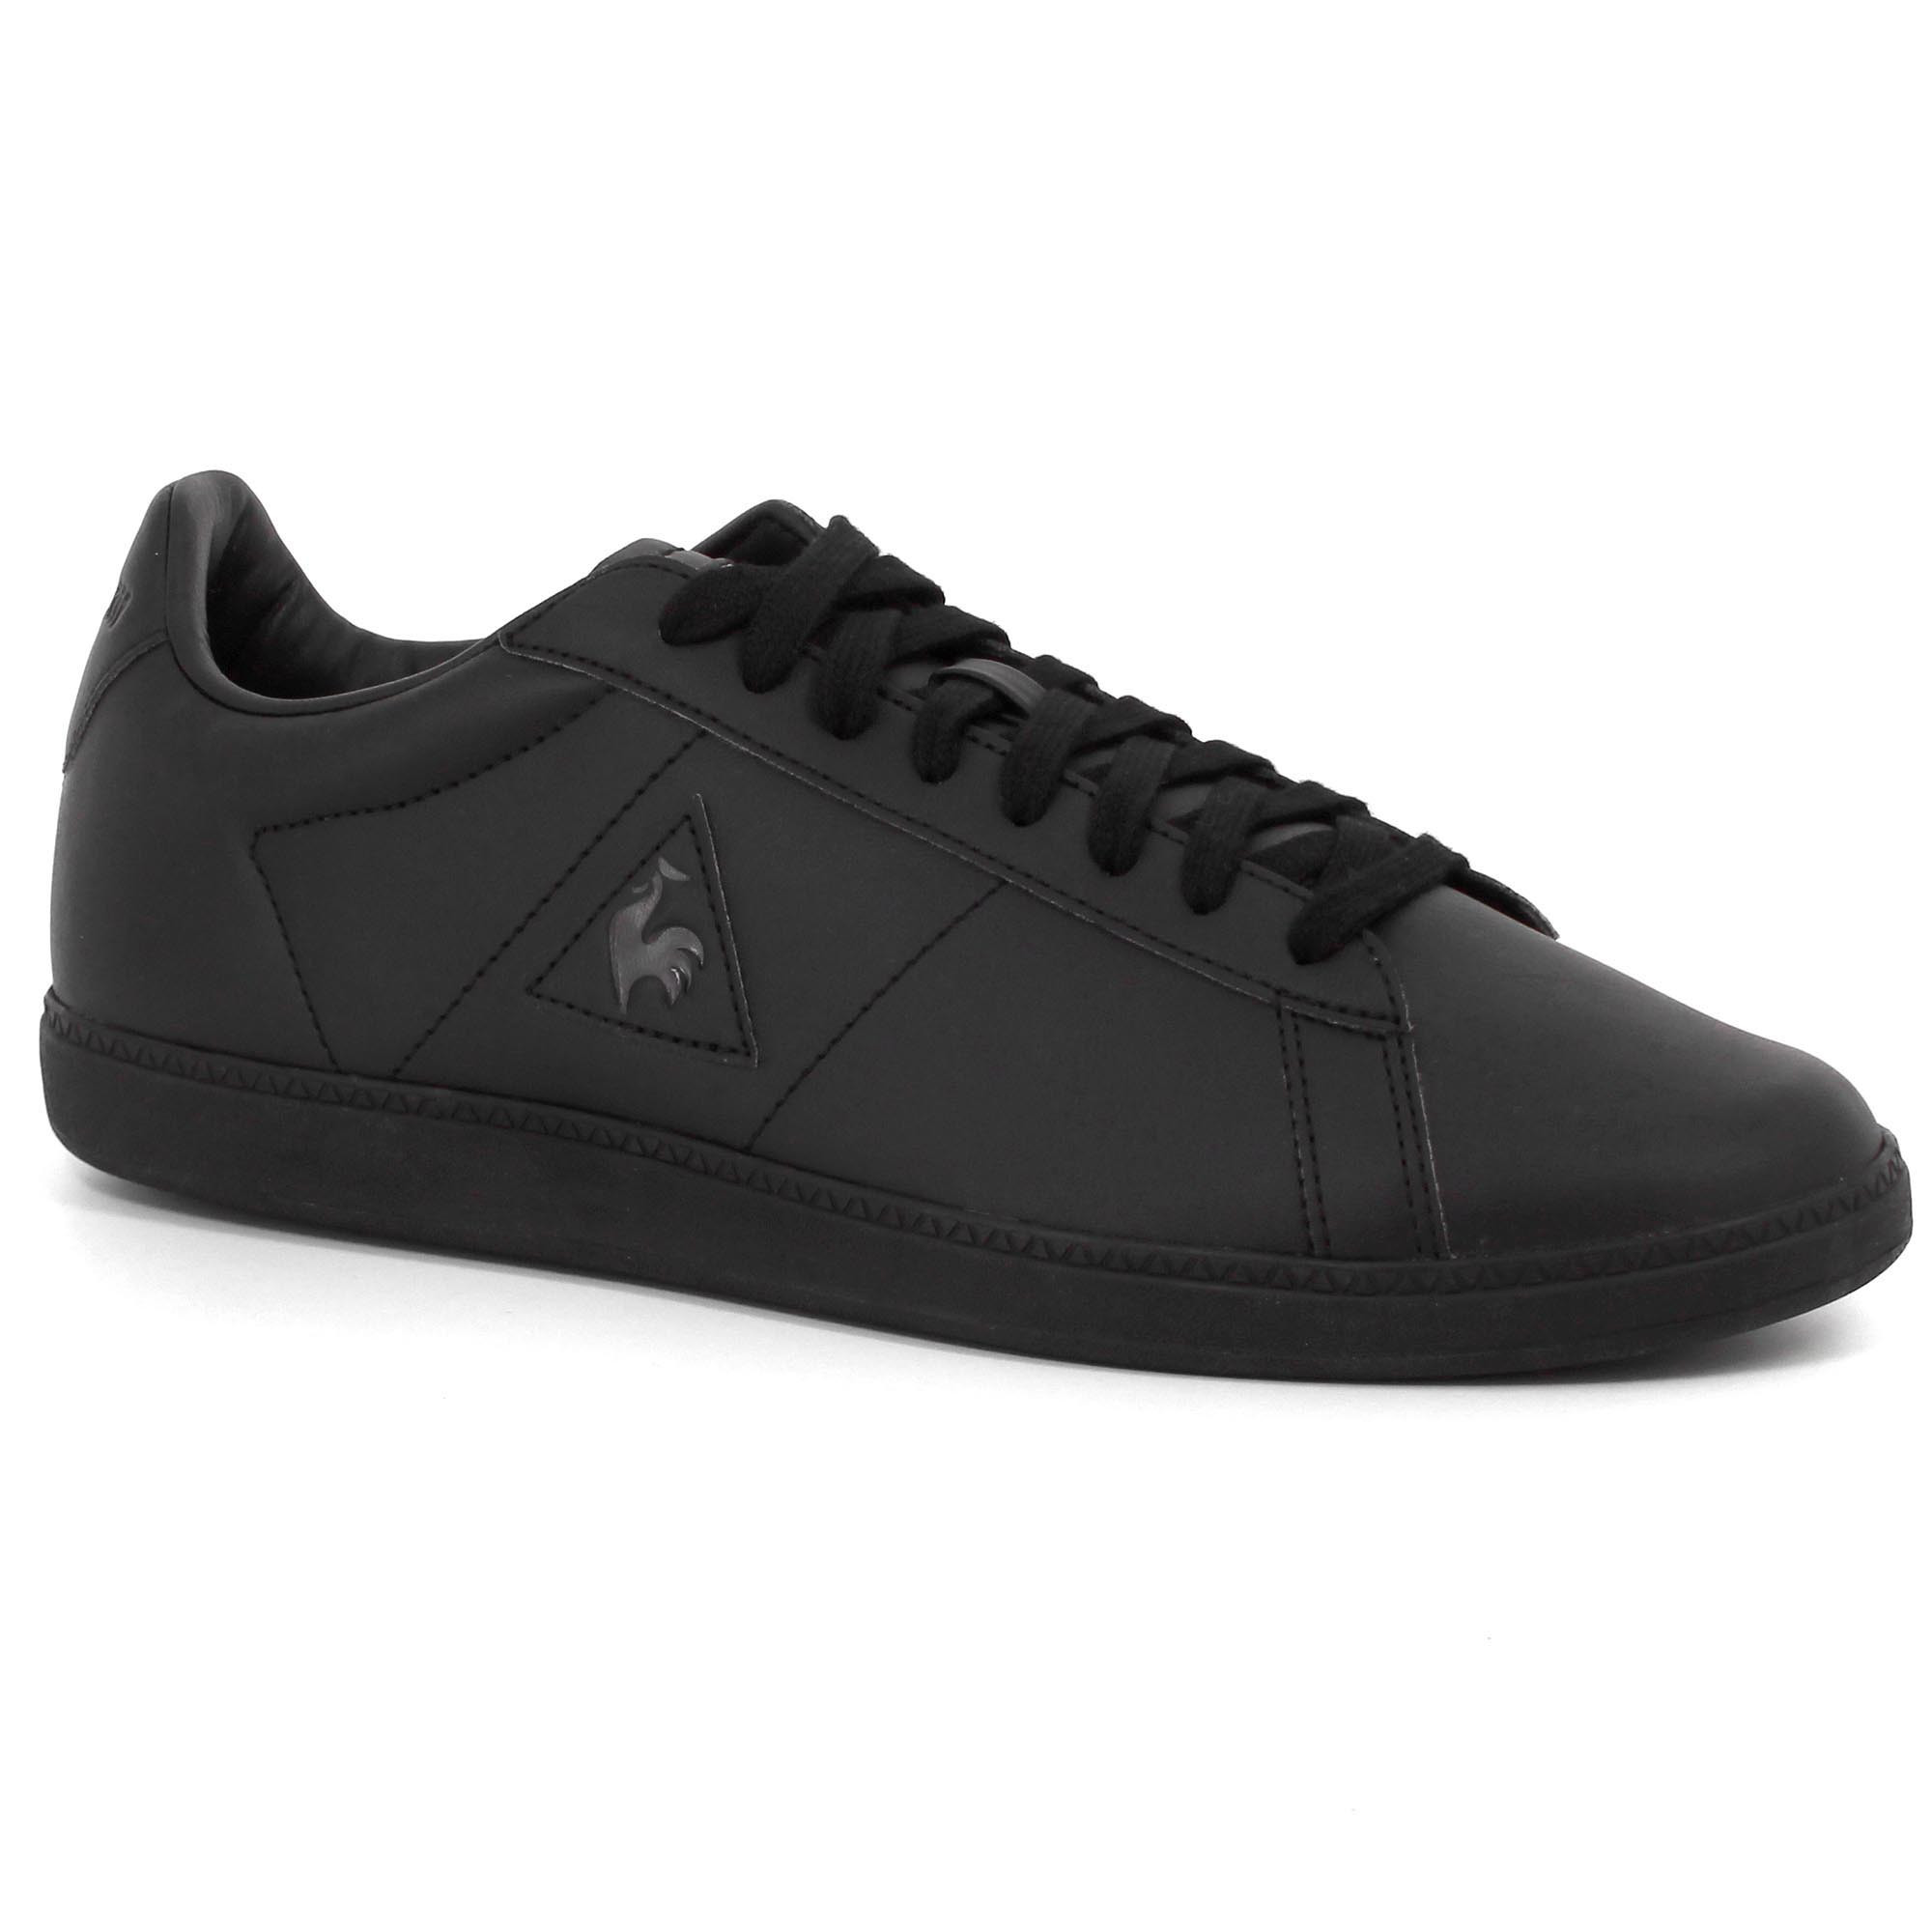 courtset s lea chaussure homme pas cher baskets basses homme le coq sportif discount. Black Bedroom Furniture Sets. Home Design Ideas